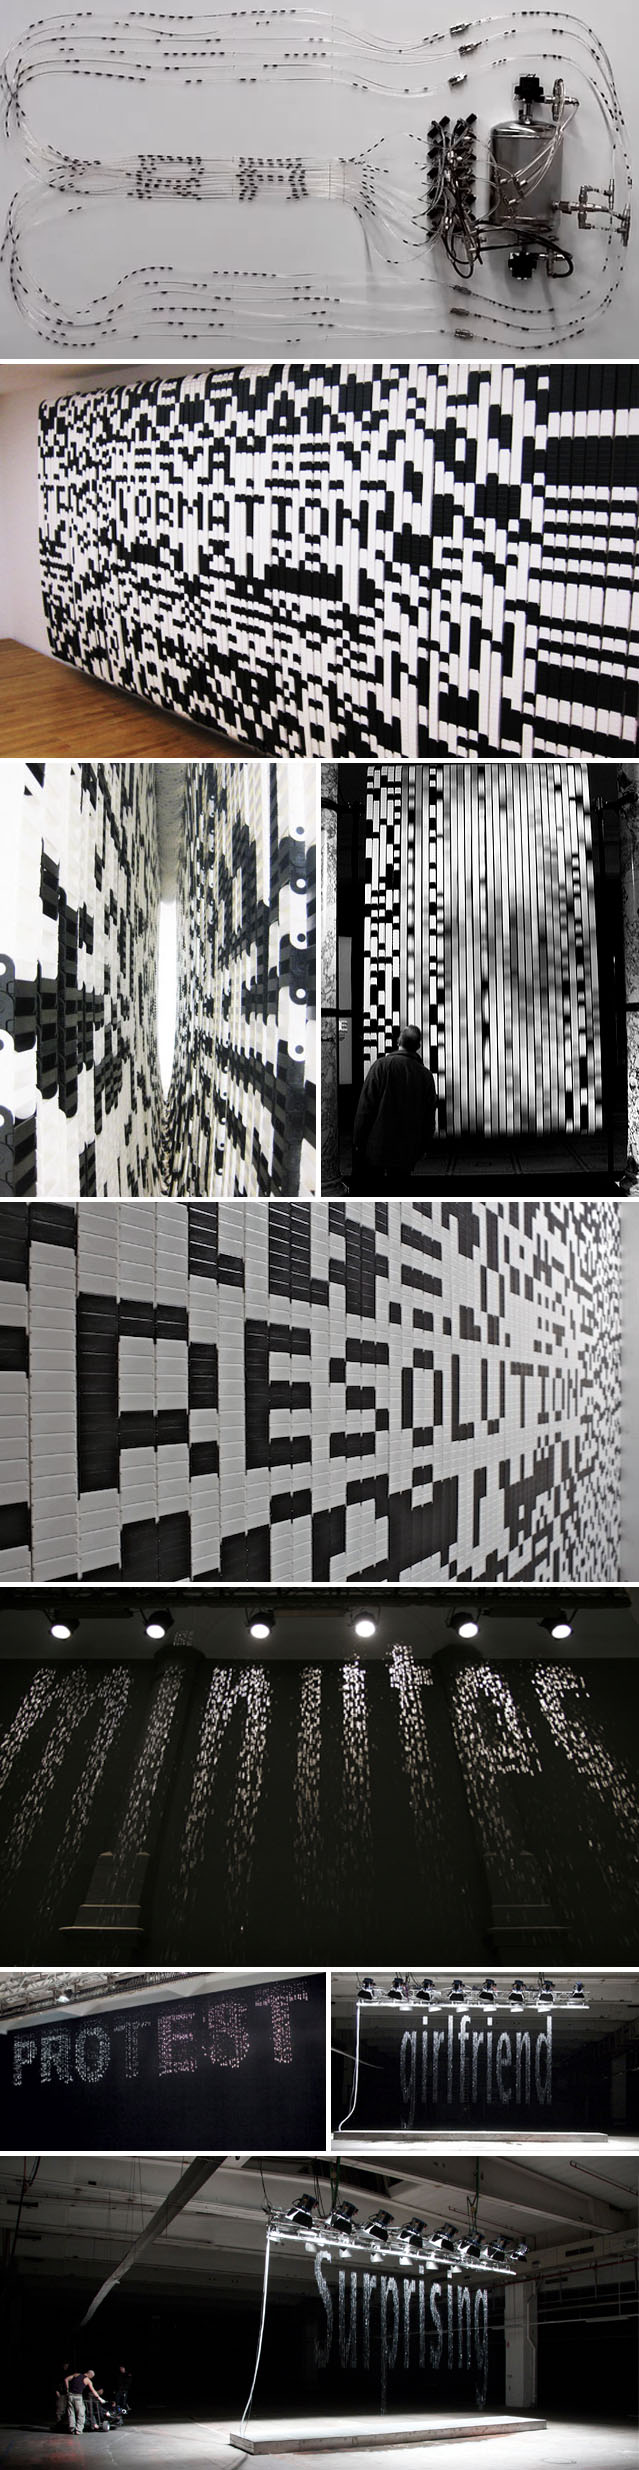 Bit.Fall, Bit.code, technology and art, code, waterfall with type and images, contemporary art